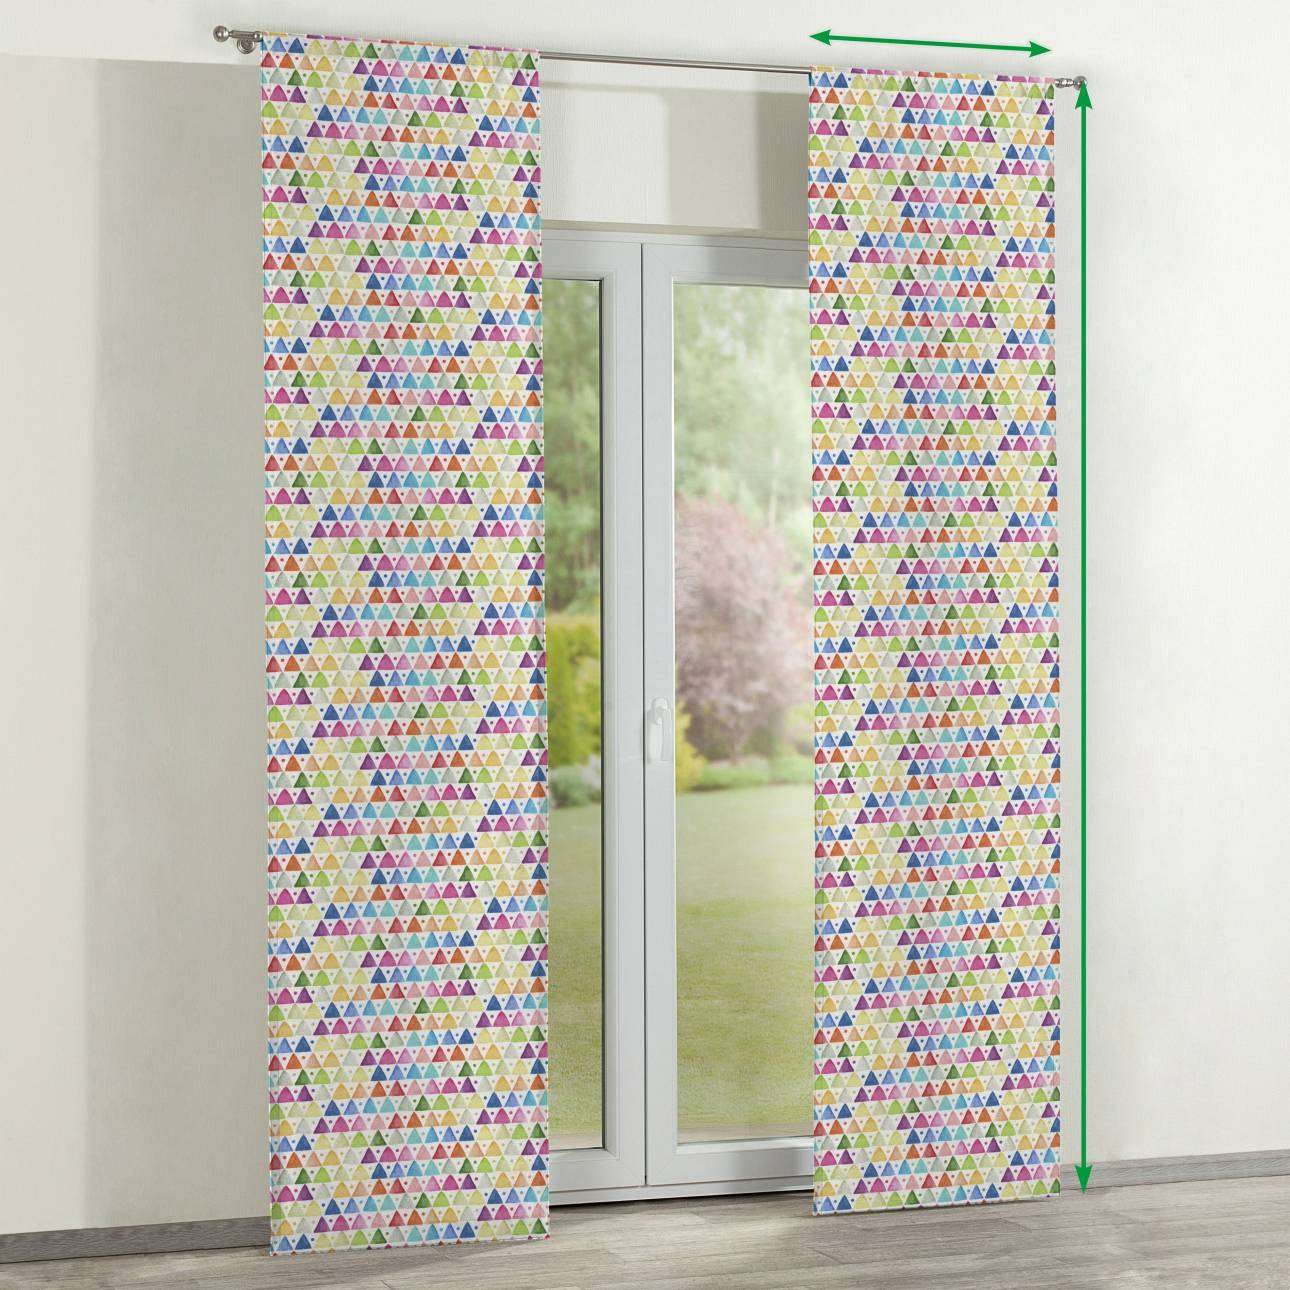 Slot panel curtains – Set of 2 in collection New Art, fabric: 140-27